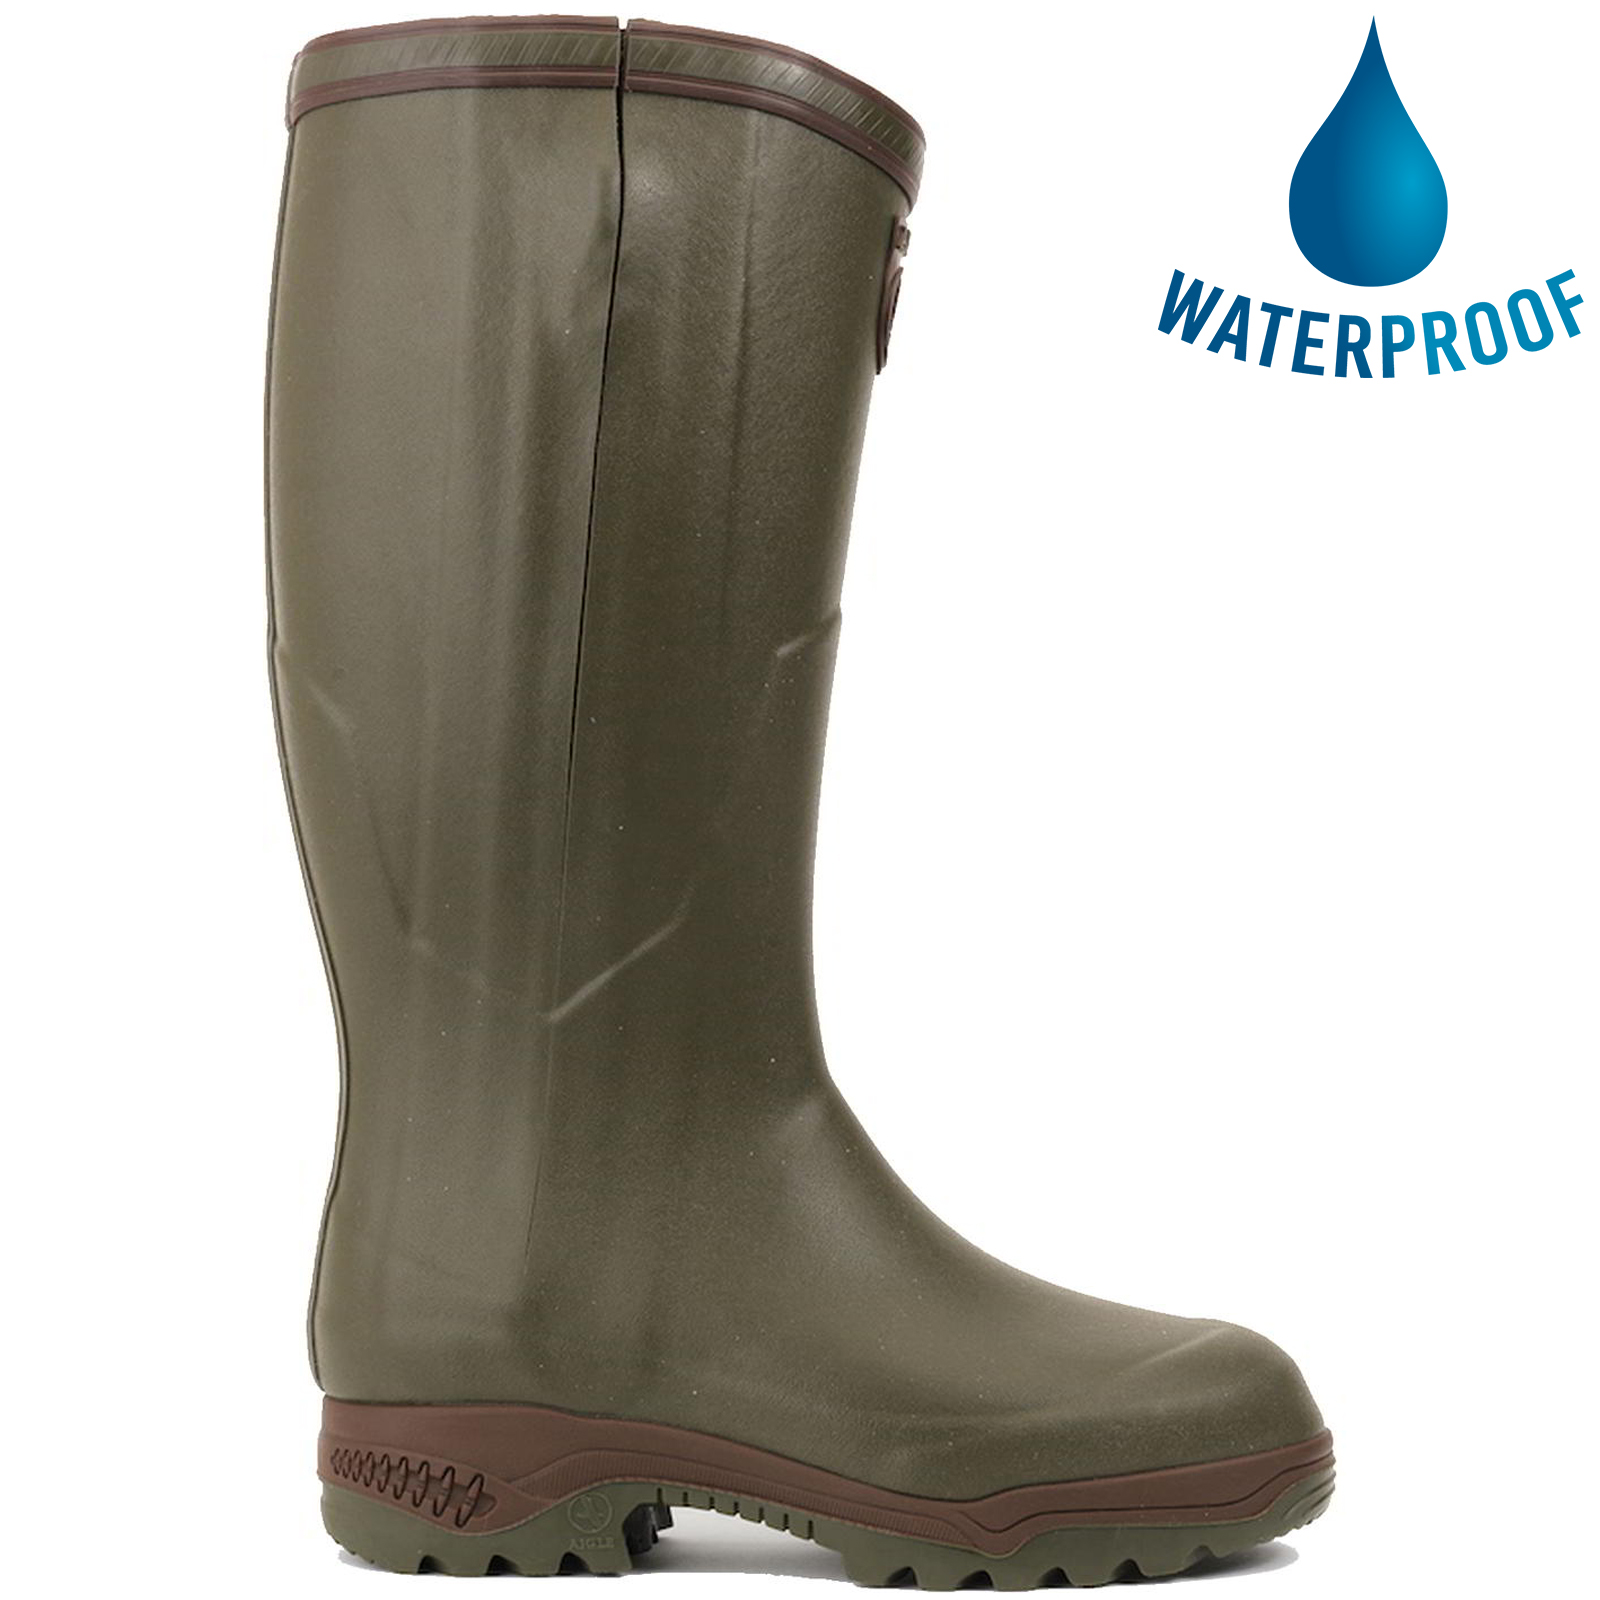 New Mens Wellies Wellington Work Boots Fur Lined Rain Shoes Long Boots Size